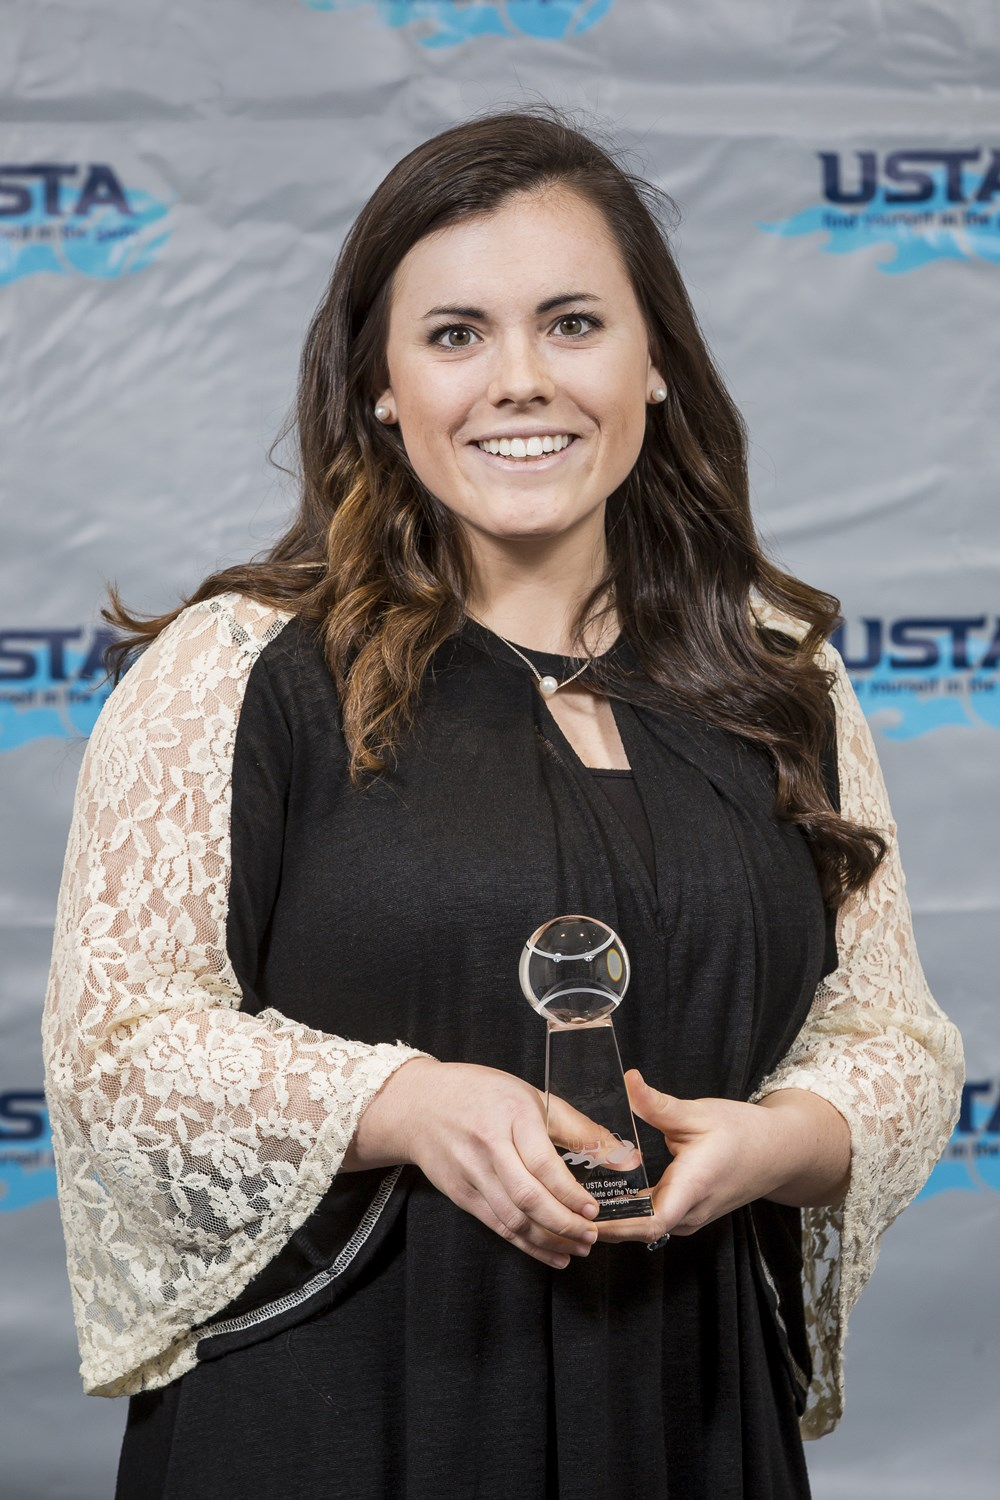 Morgan_Lawson_-_2017_USTA_Georgia_Scholar_Athlete